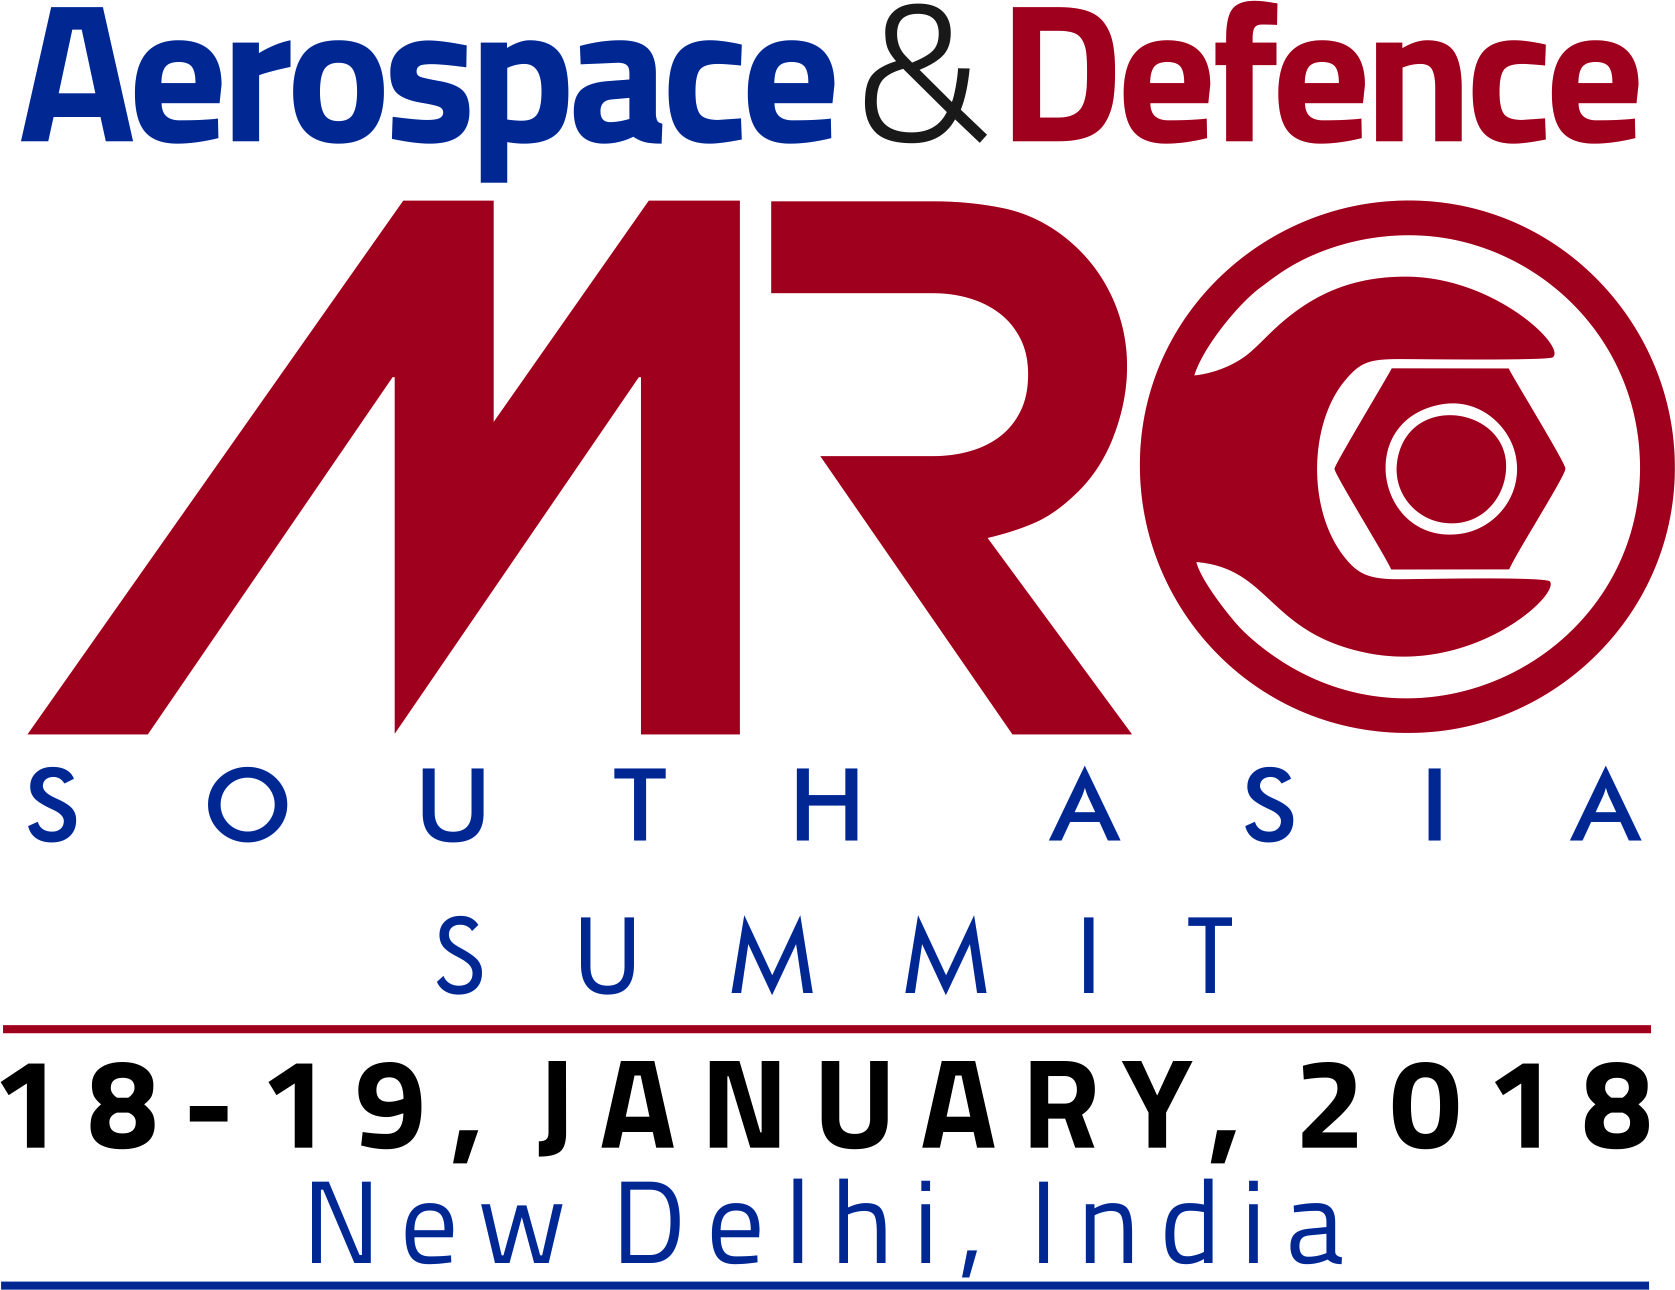 Aerospace & Defence MRO - South Asia Summit 2018